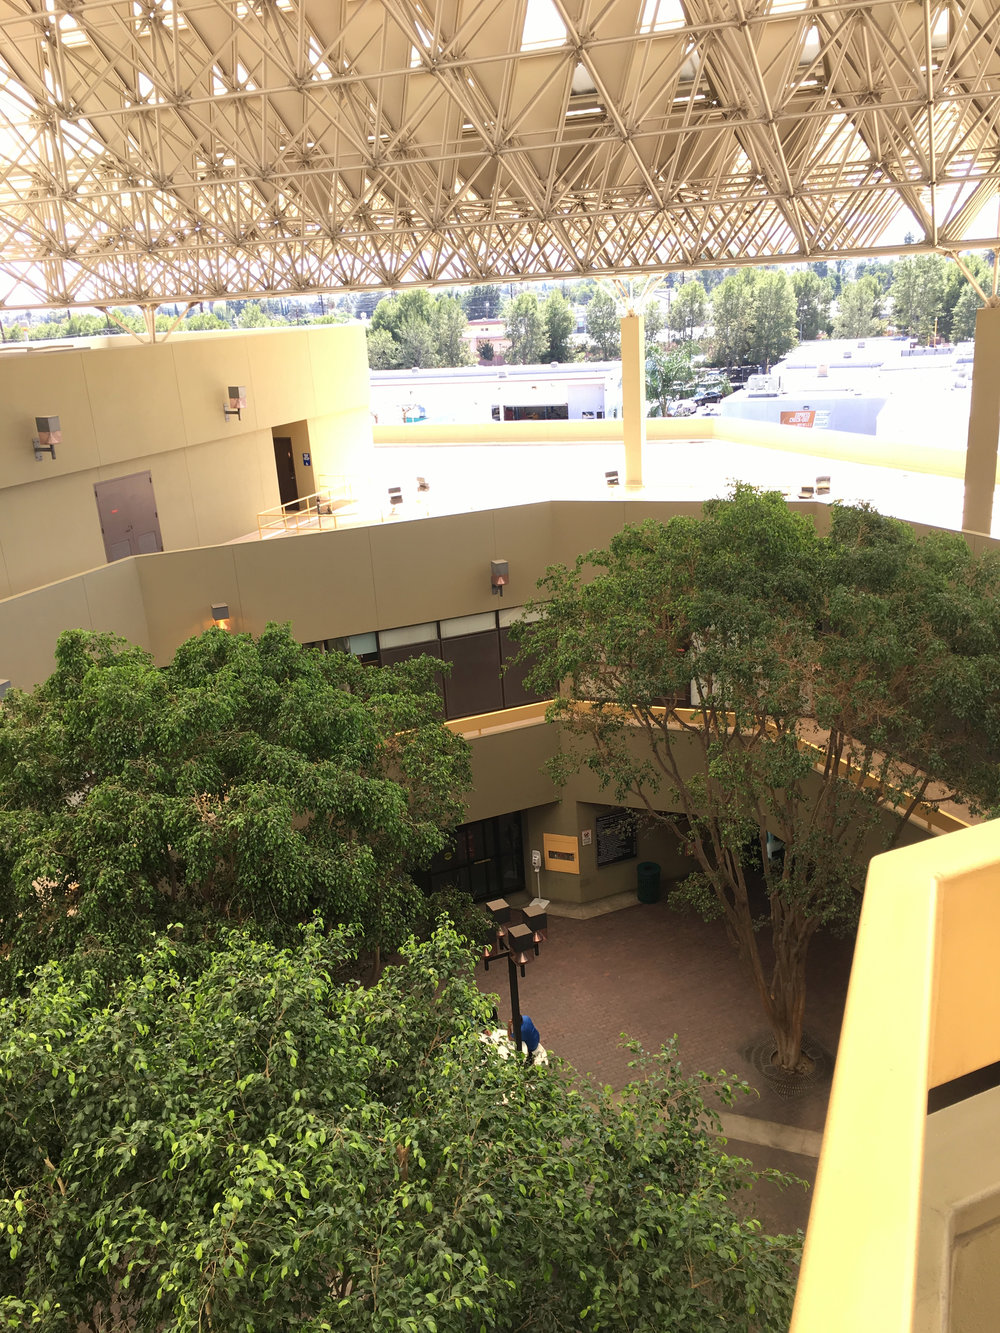 The view of the building's courtyard from OSHA's Van Nuys, CA office.